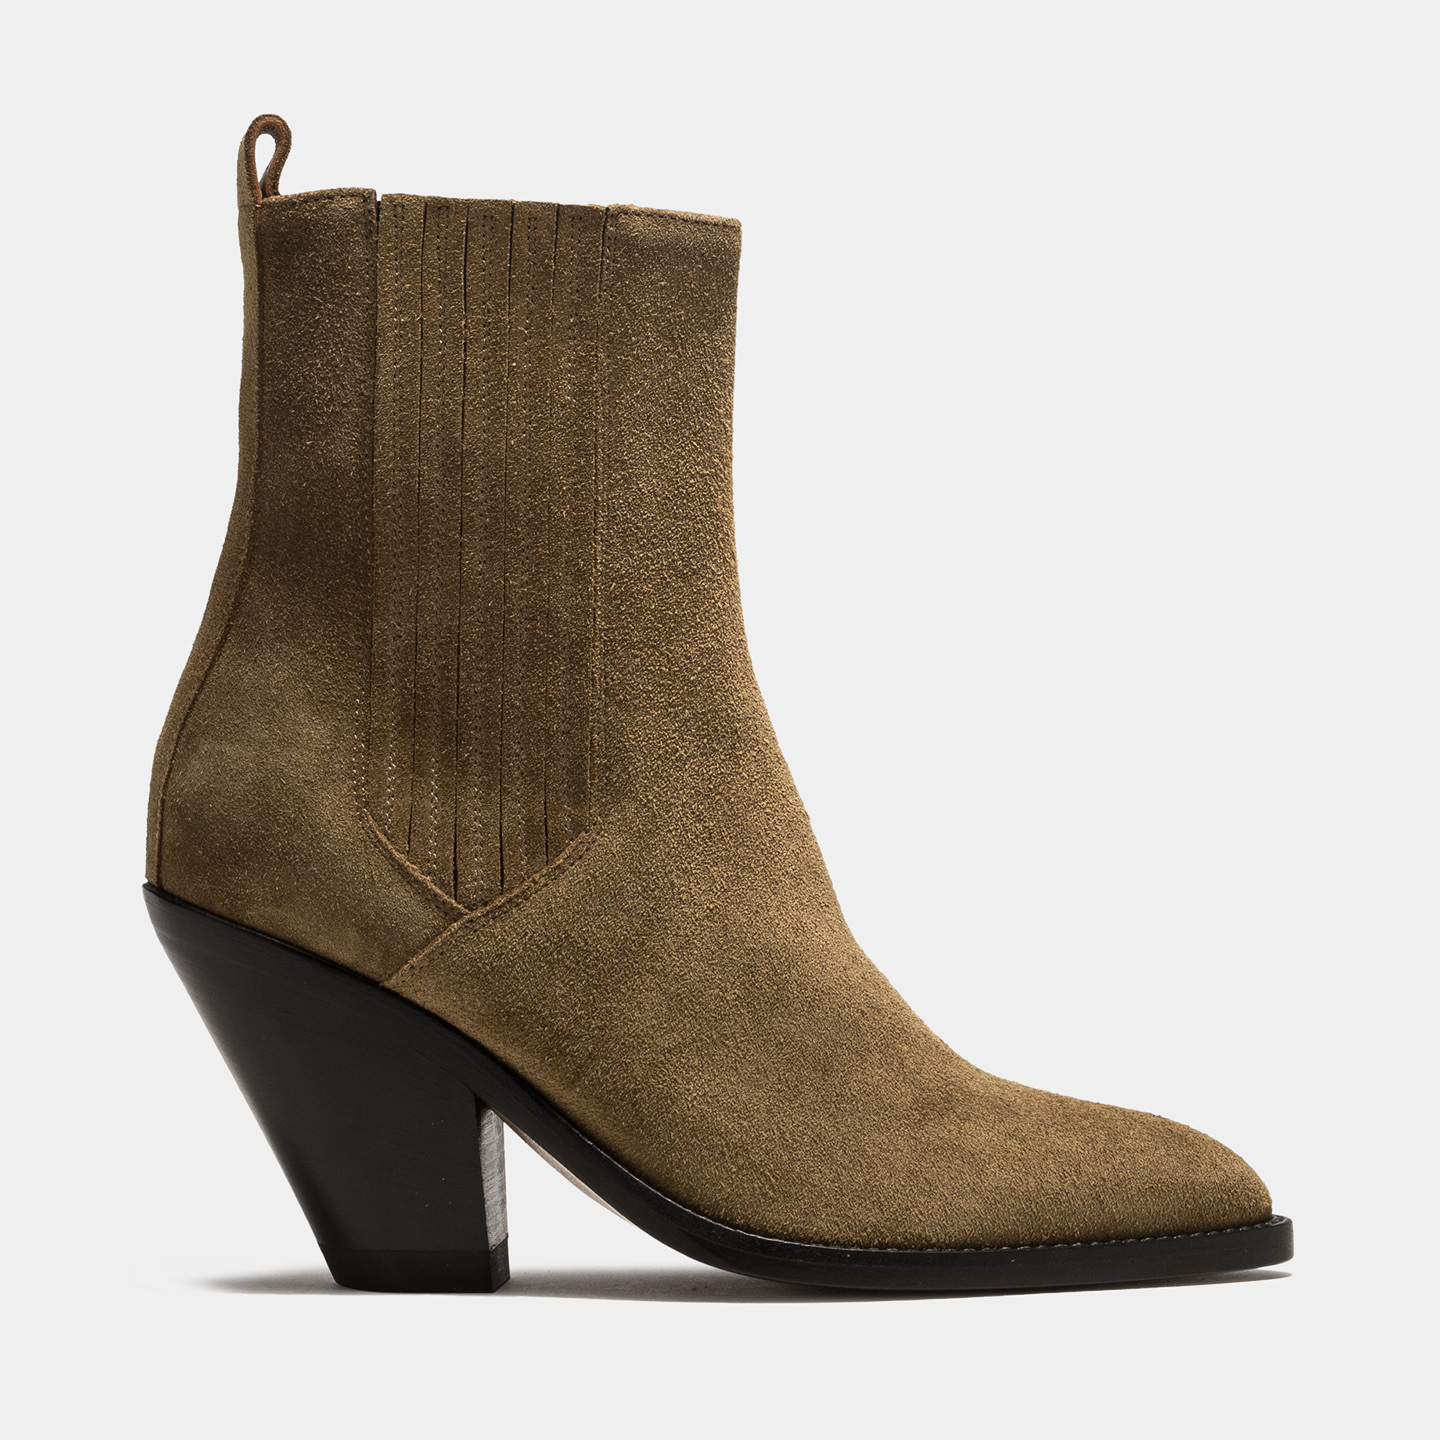 BUTTERO: STIVALE JANE IN SUEDE PLANTATION